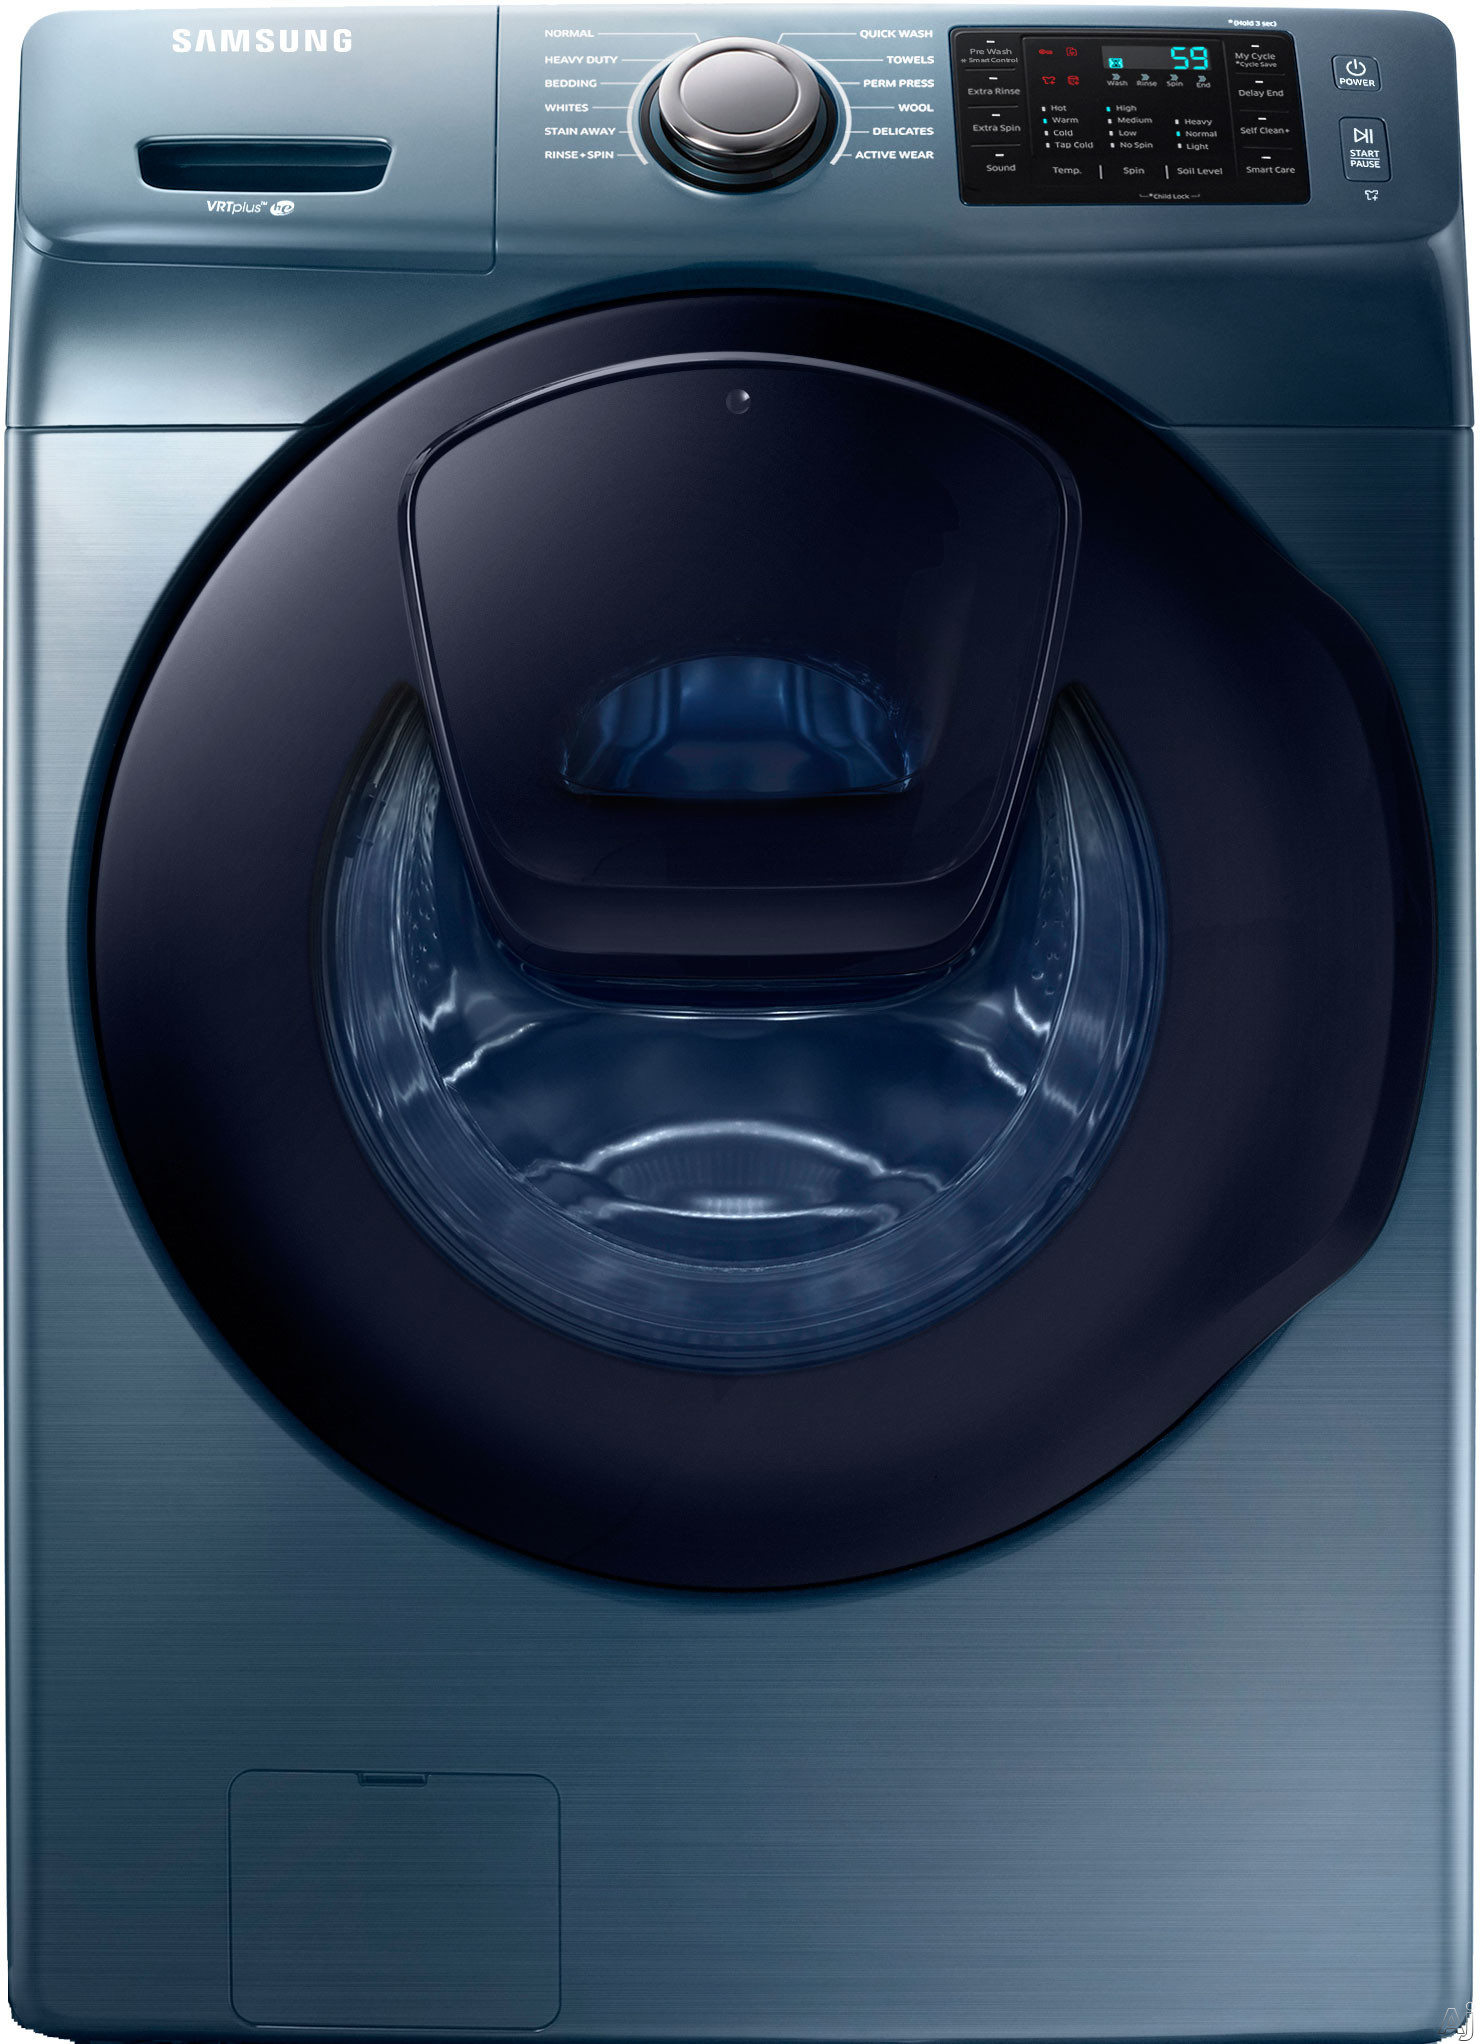 Samsung WF45K6200AZ 27 Inch 4.5 cu. ft. Front Load Washer with AddWash, 12 Preset Wash Cycles, 10 Wash Options, 1,300 RPM, Smart Care, Vibration Reduction Plus, Self Clean Plus and ENERGY STAR Certification: Azure WF45K6200AZ